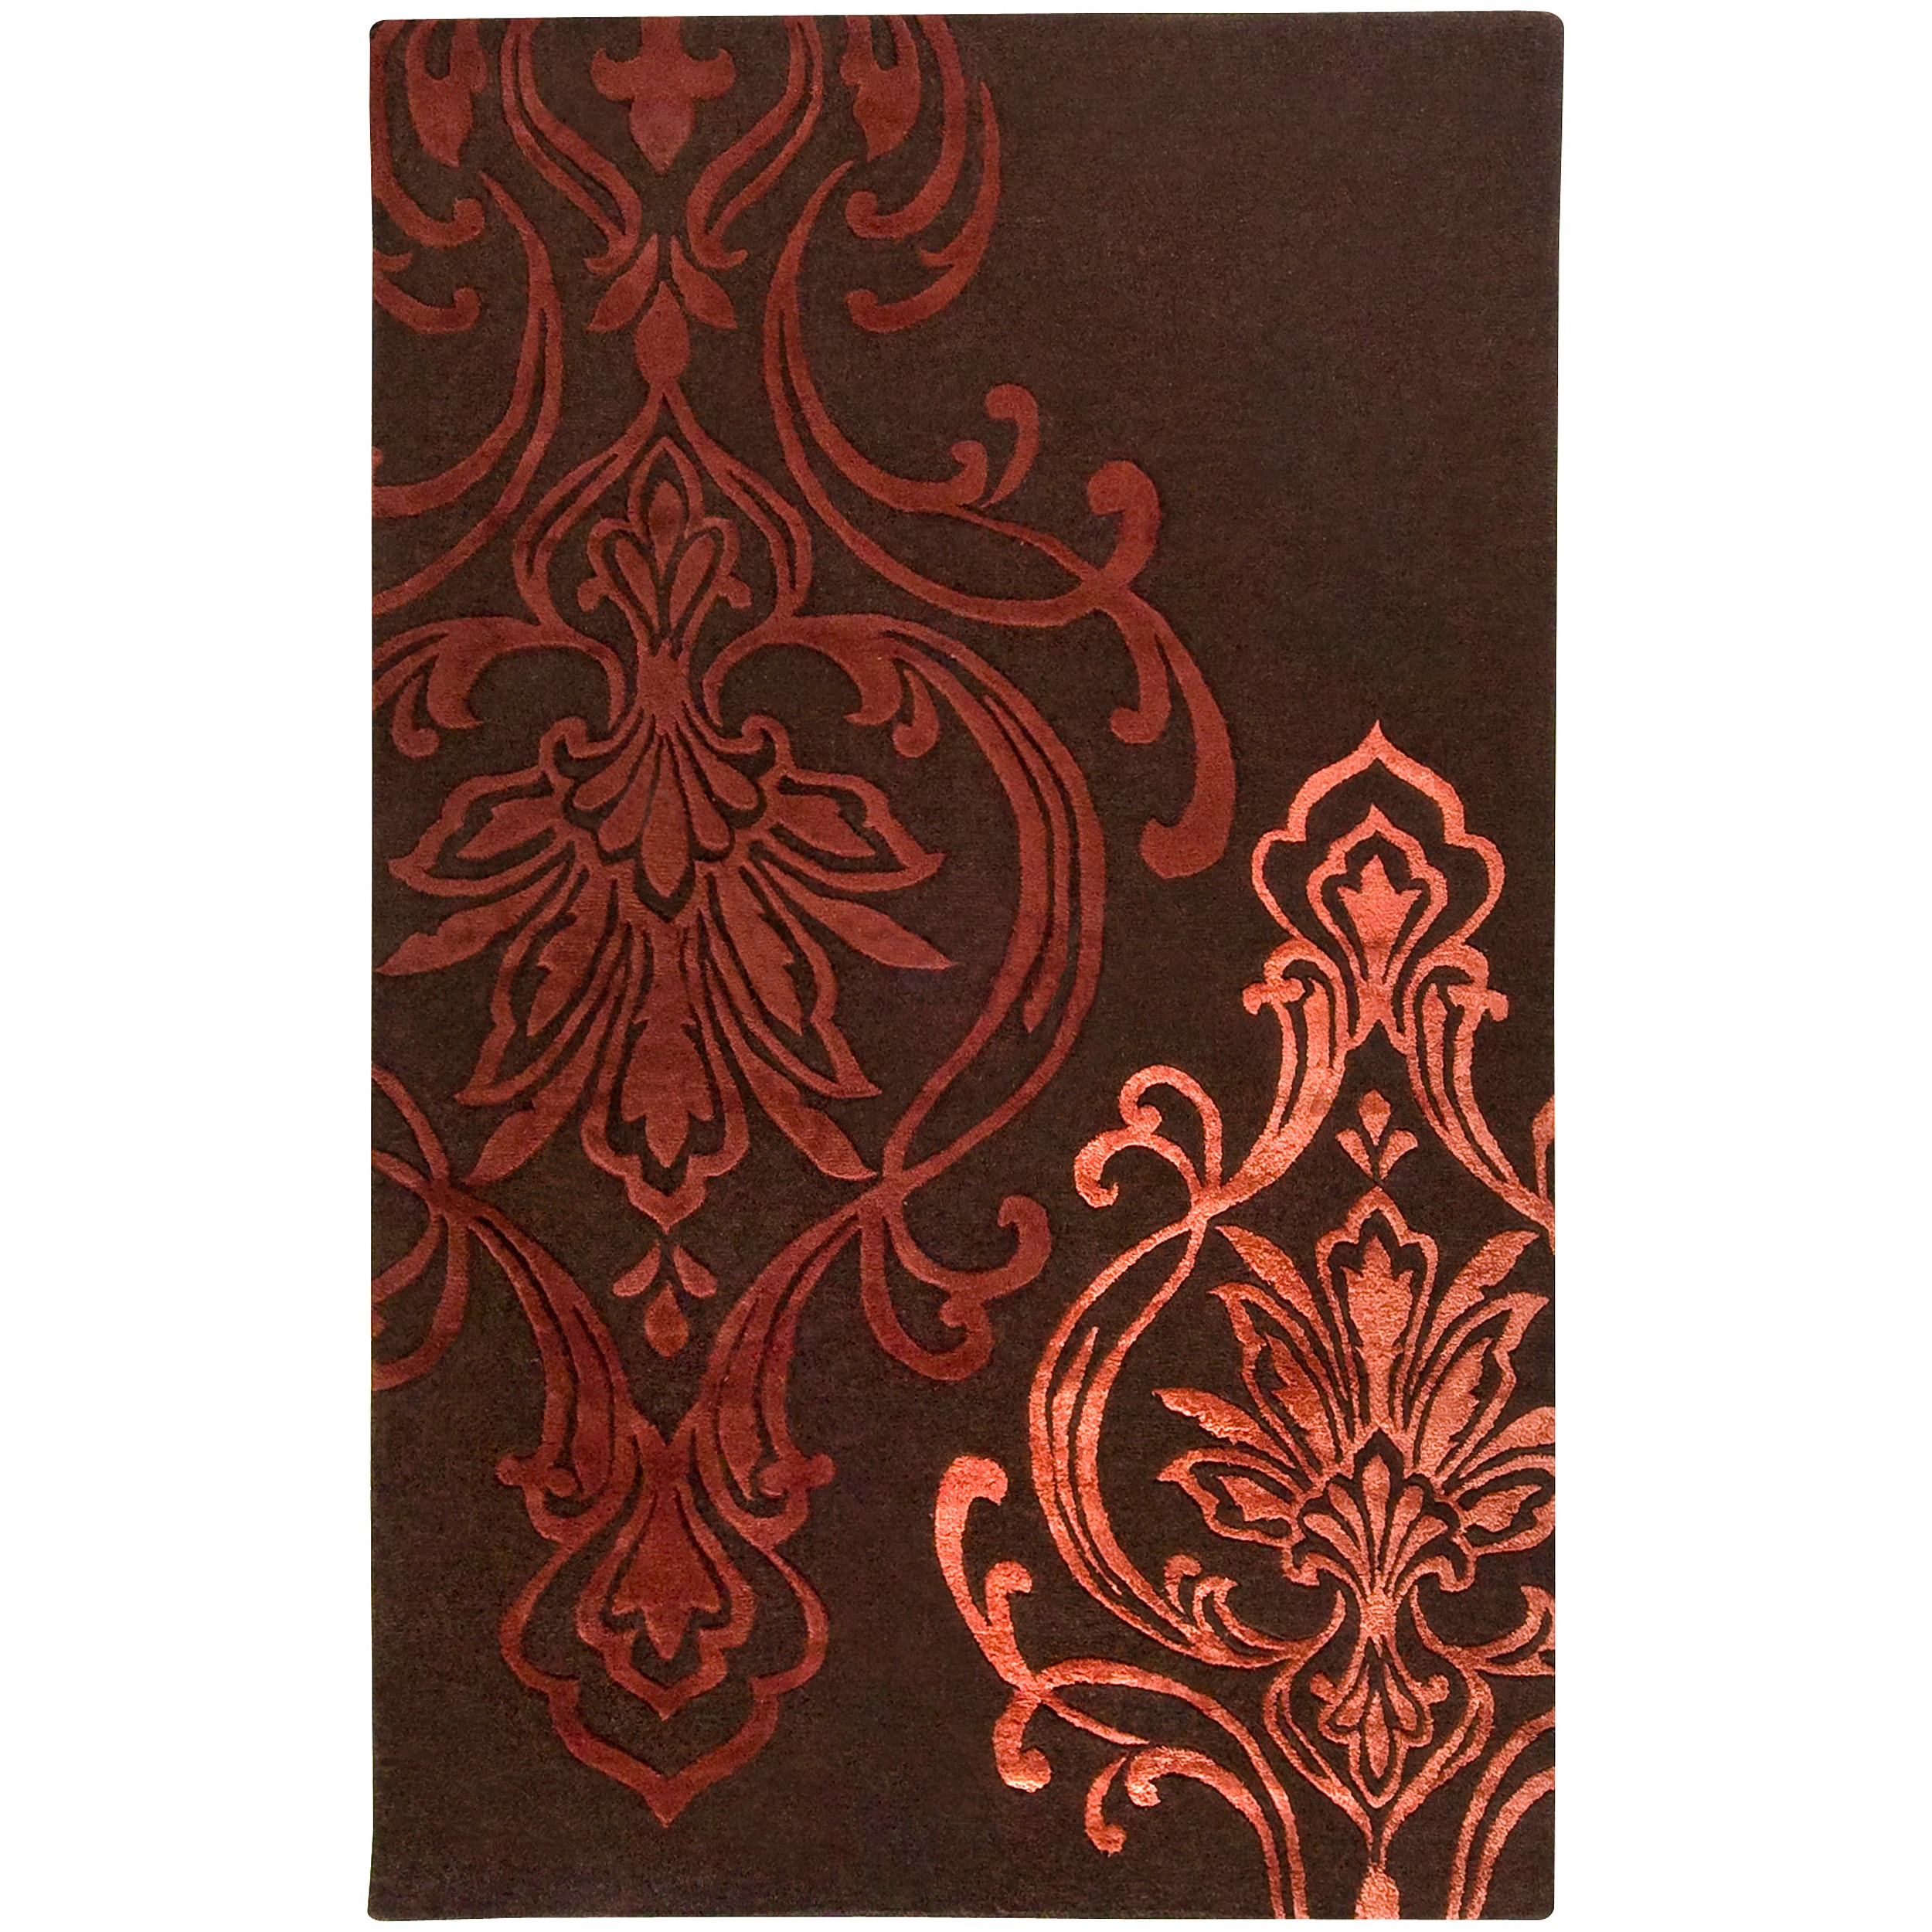 Hand-tufted Custer Damask Pattern Wool Area Rug (9' x 13')